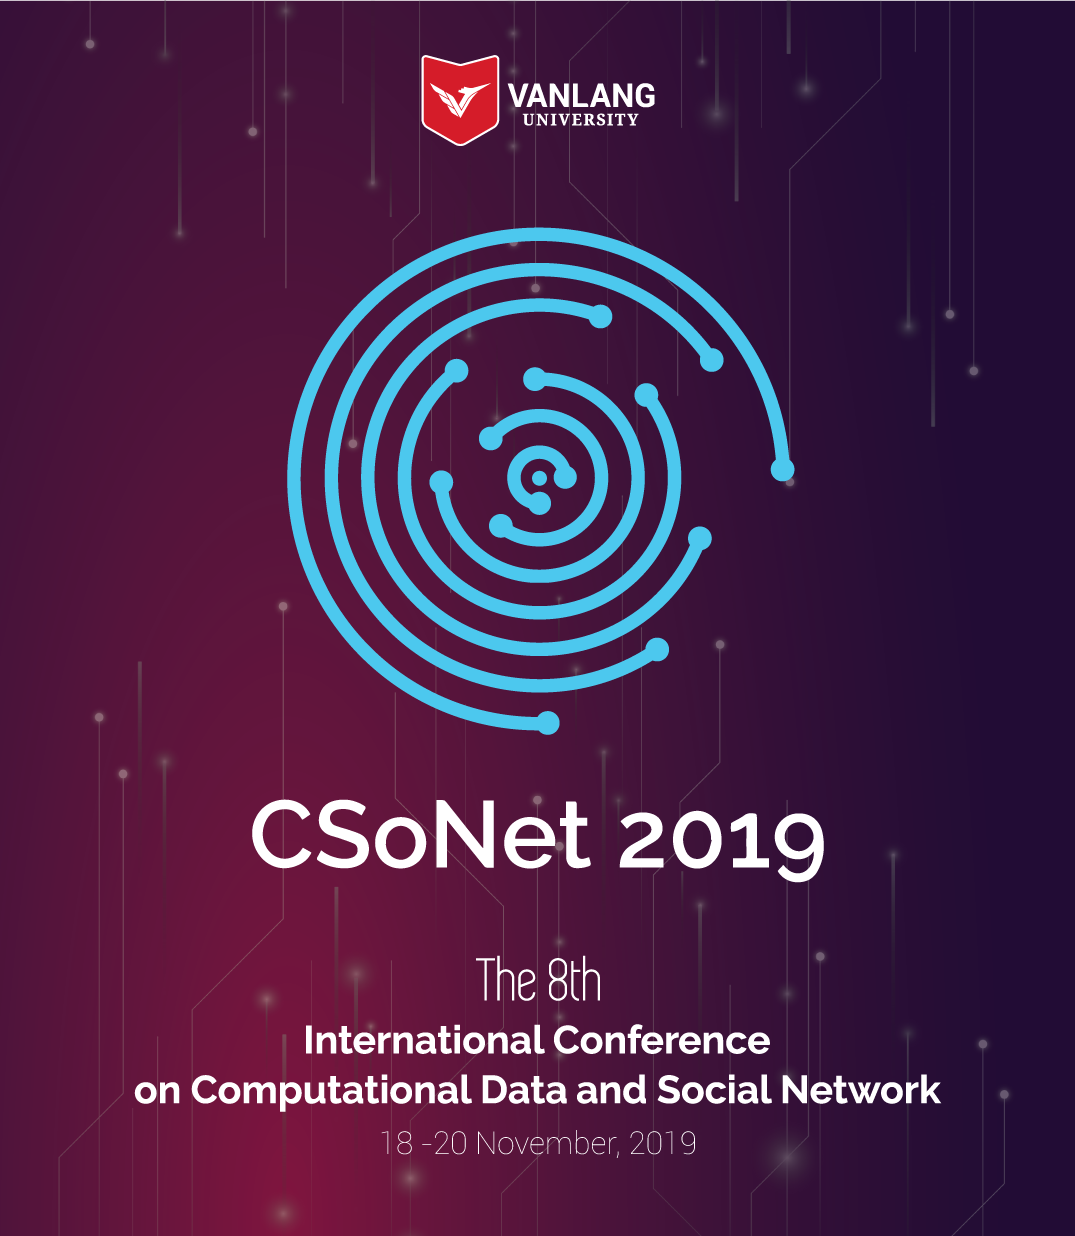 vlu 8th CsoNet 2019 at vanlanguni logo